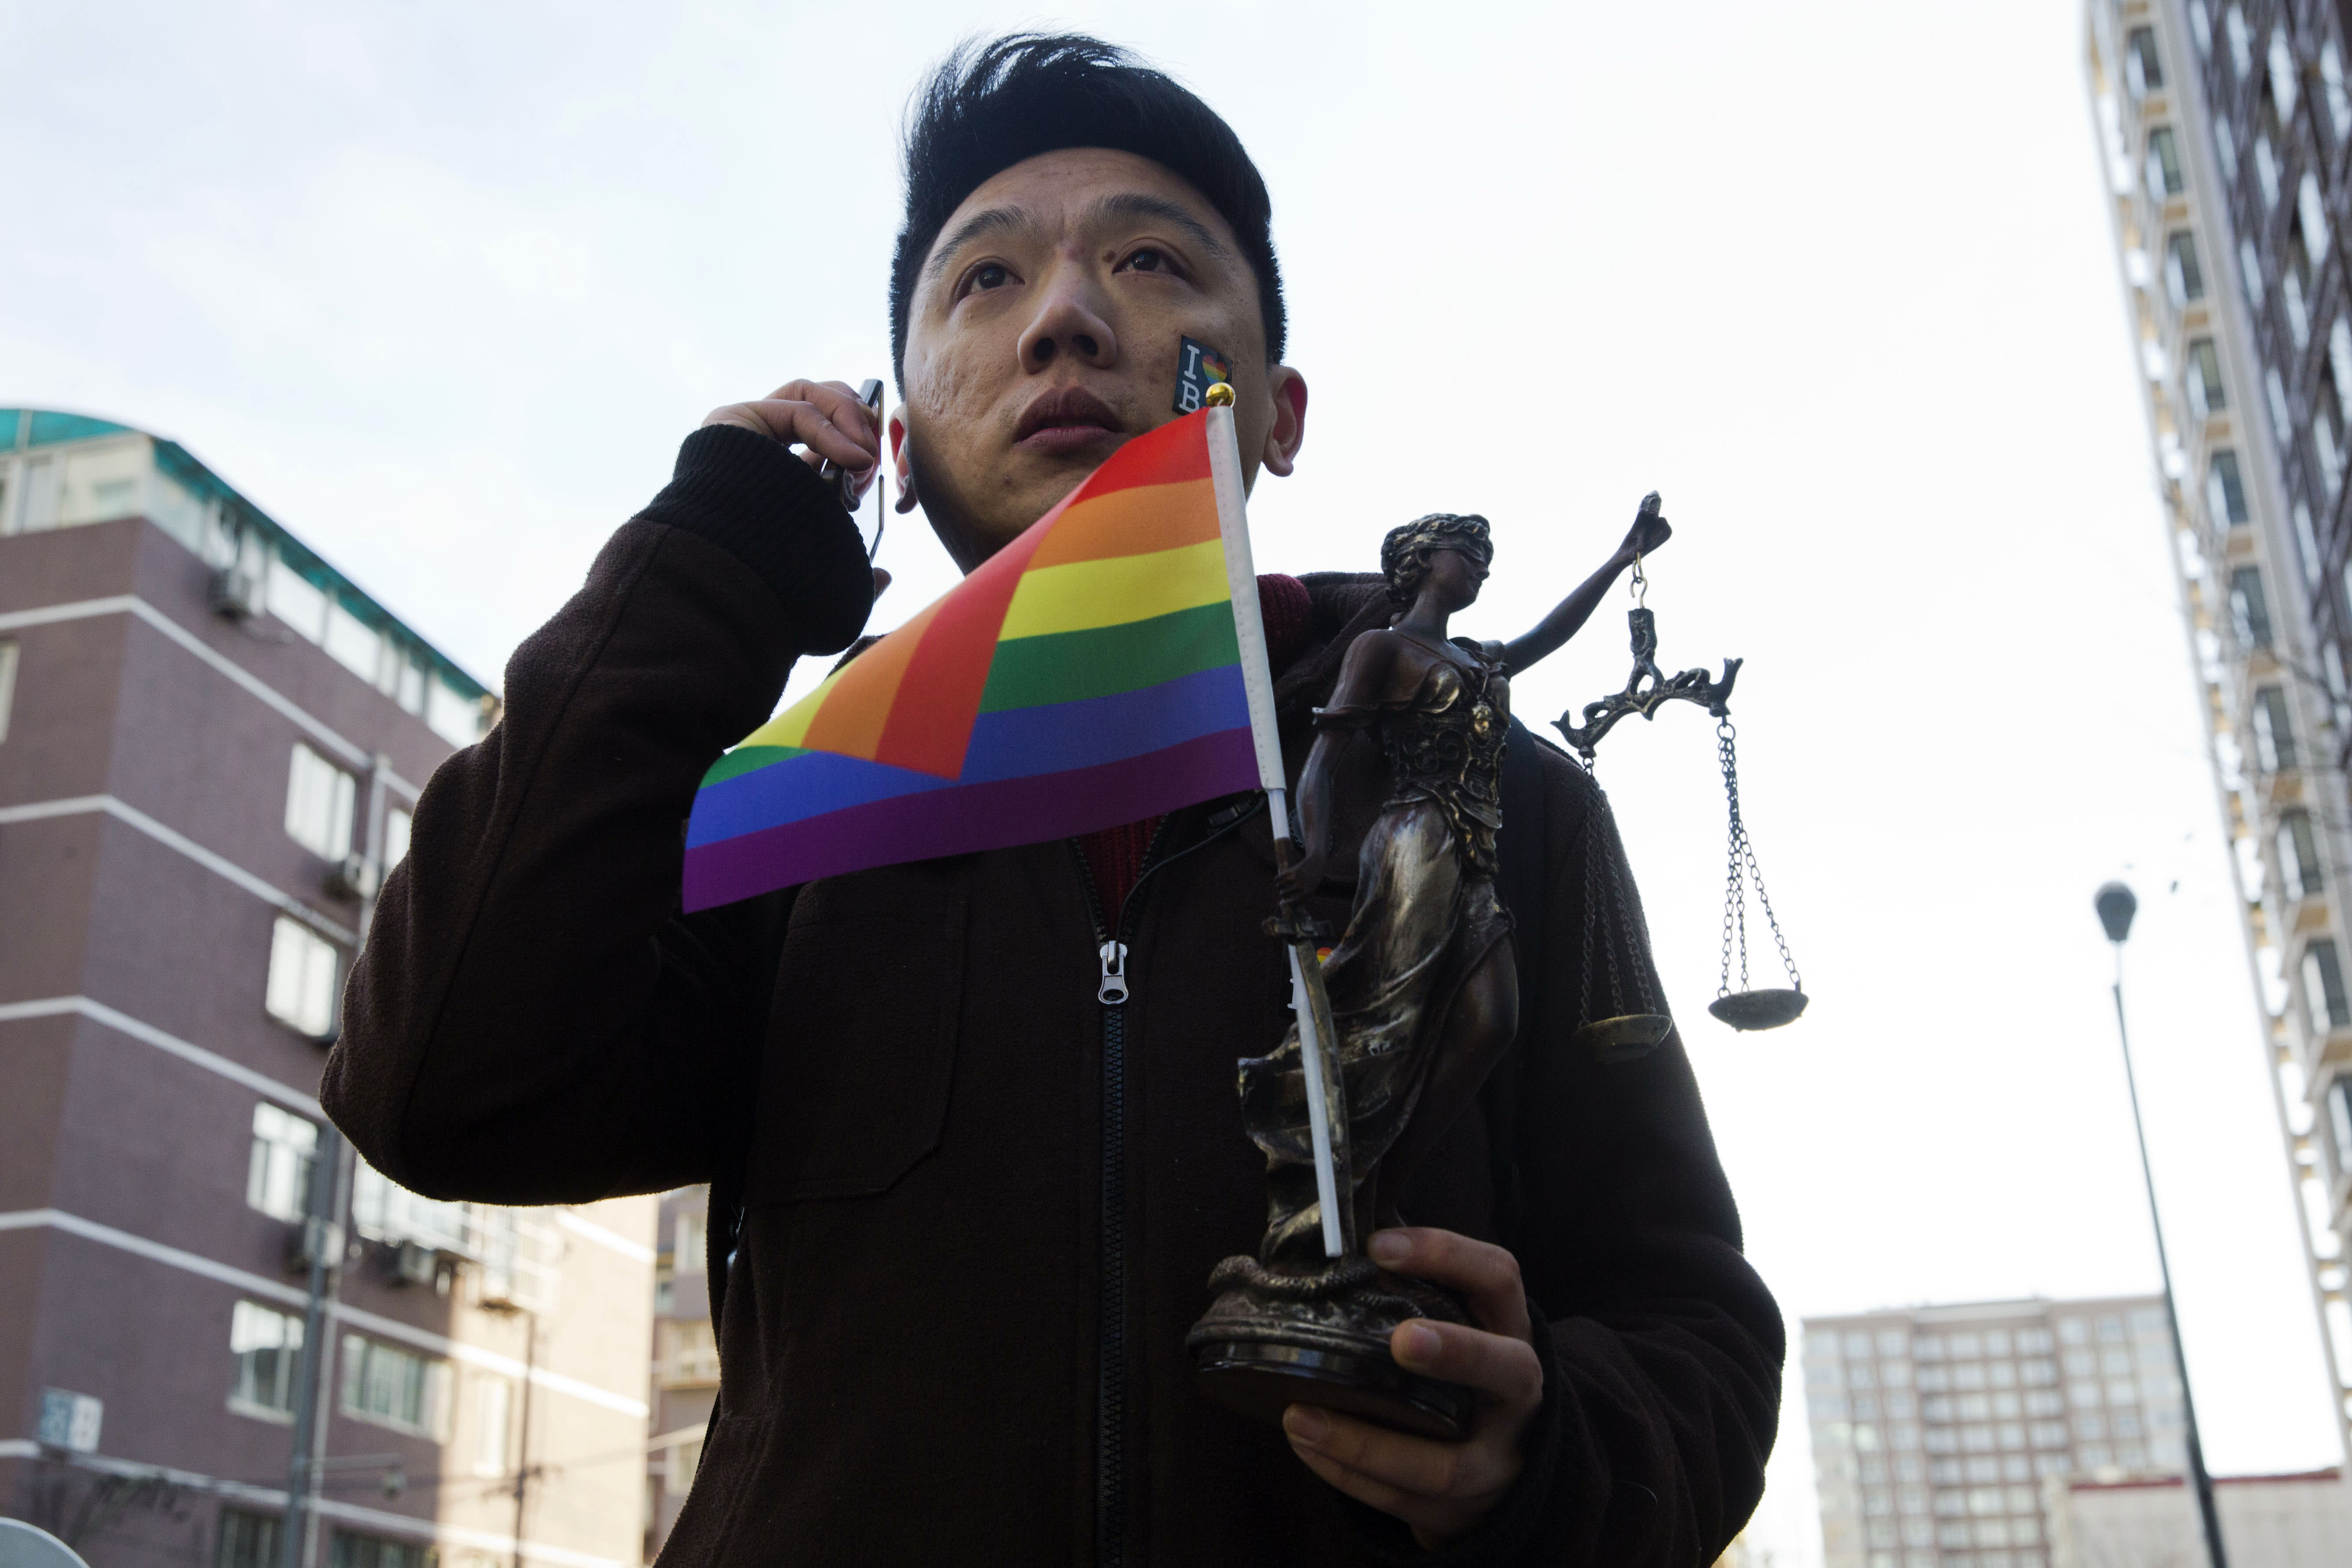 Victory for plaintiff in China gay conversion case